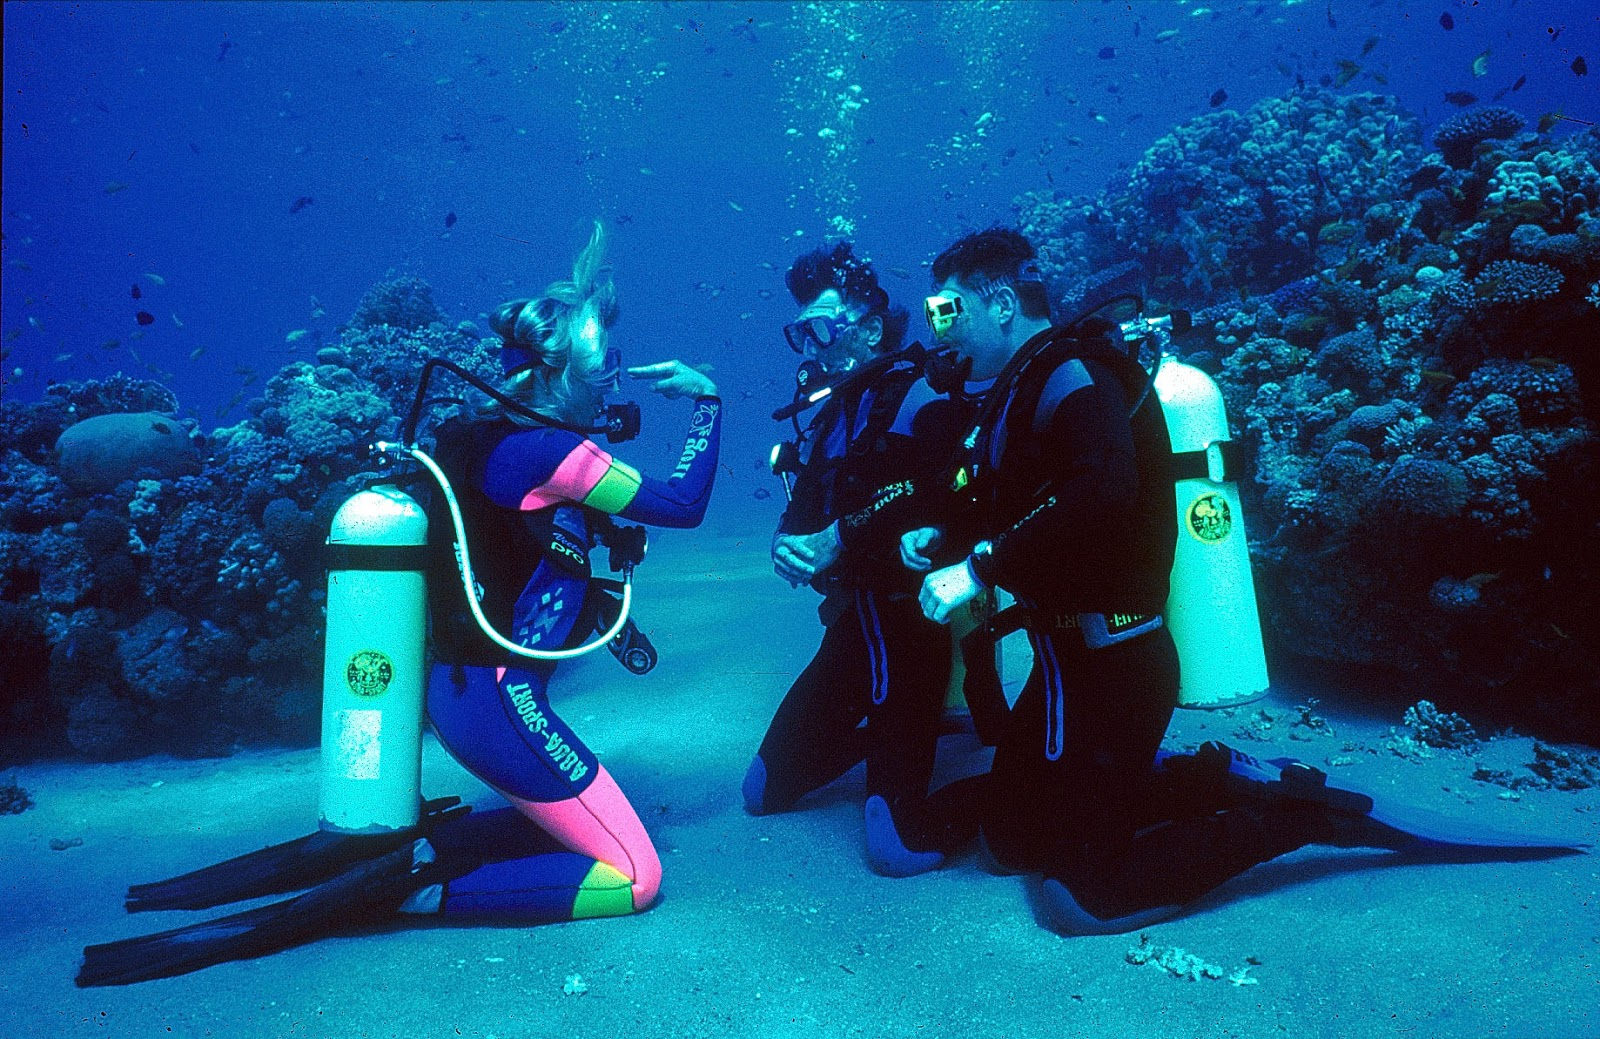 an illustration of the basic aspects of scuba diving Buy scuba gear & dive gear at the best prices & largest selection with scuba gear reviews learn what dive gear is best for you to enjoy while scuba diving basic.